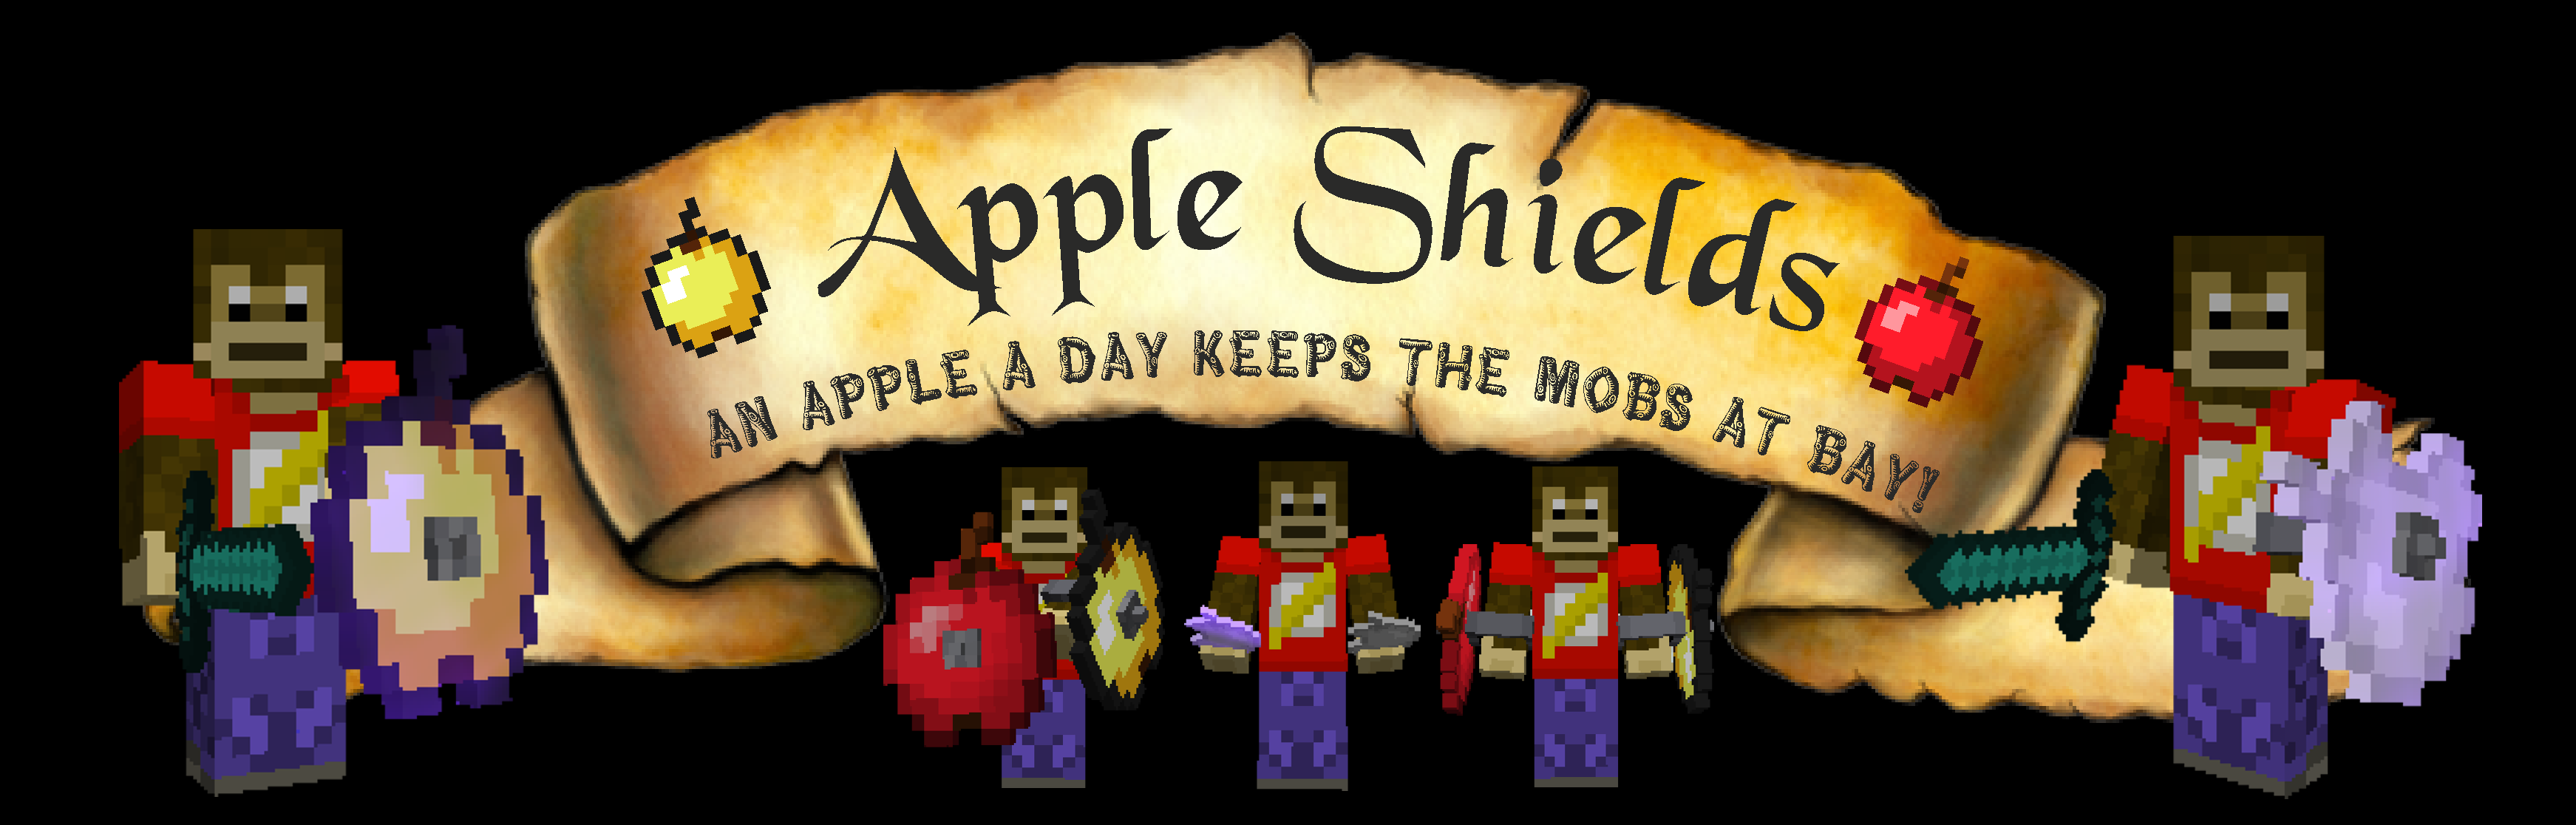 Apple Shields скриншот 1